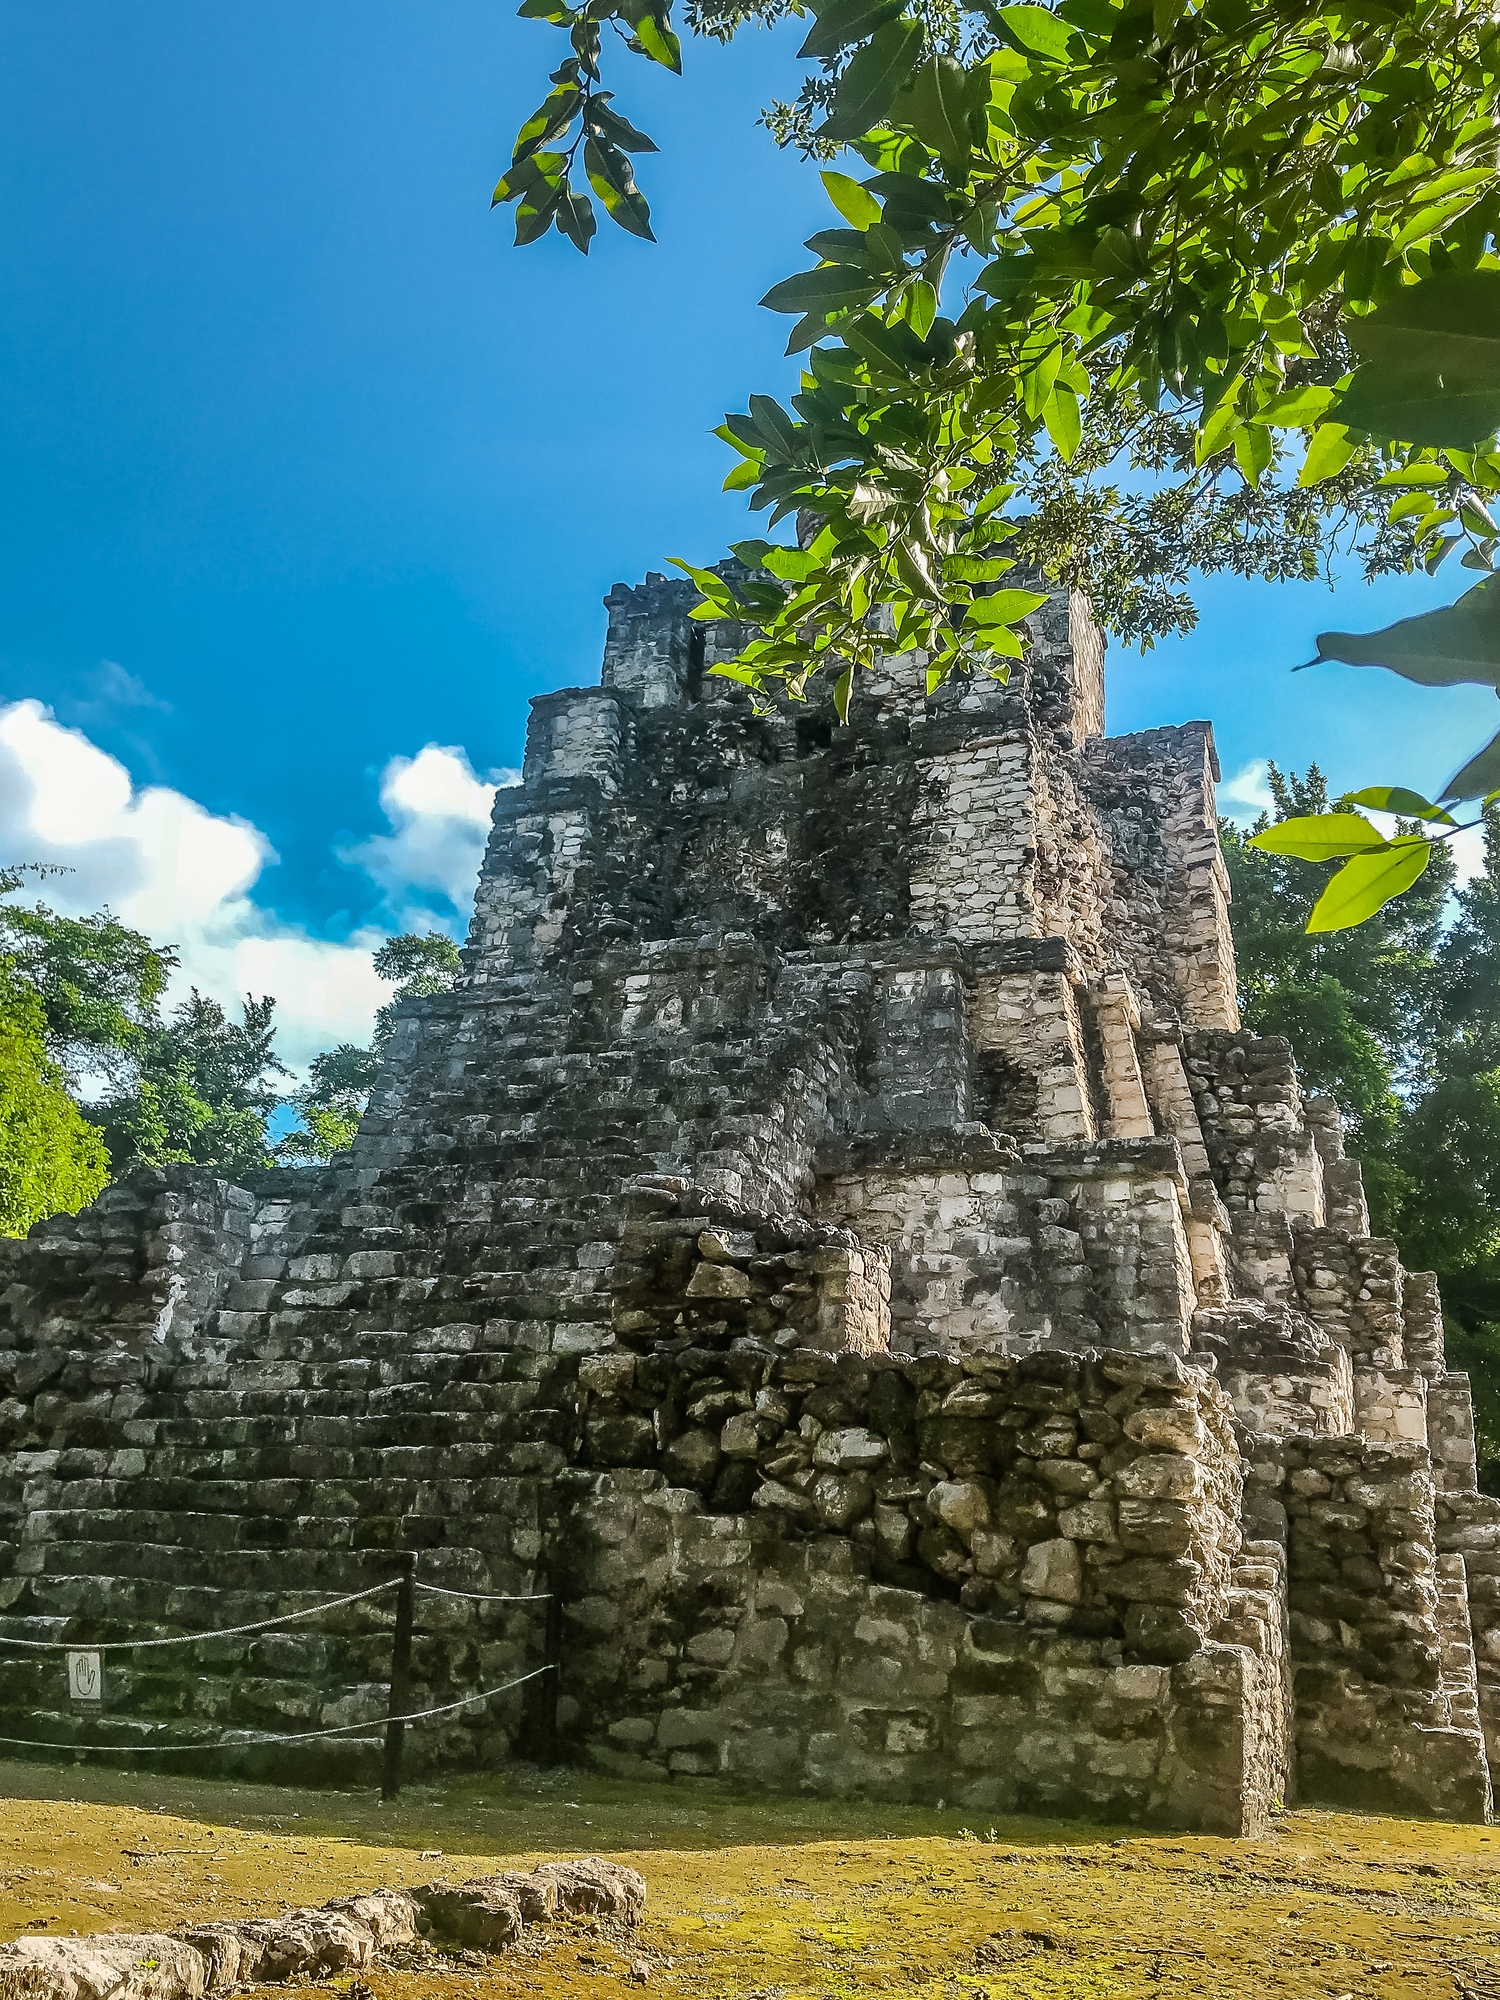 Muyil is a great day trip from Felipe Carrillo Puerto. This Mayan ruin has none of the crowds that you see in Chichen Itza or Tulum.